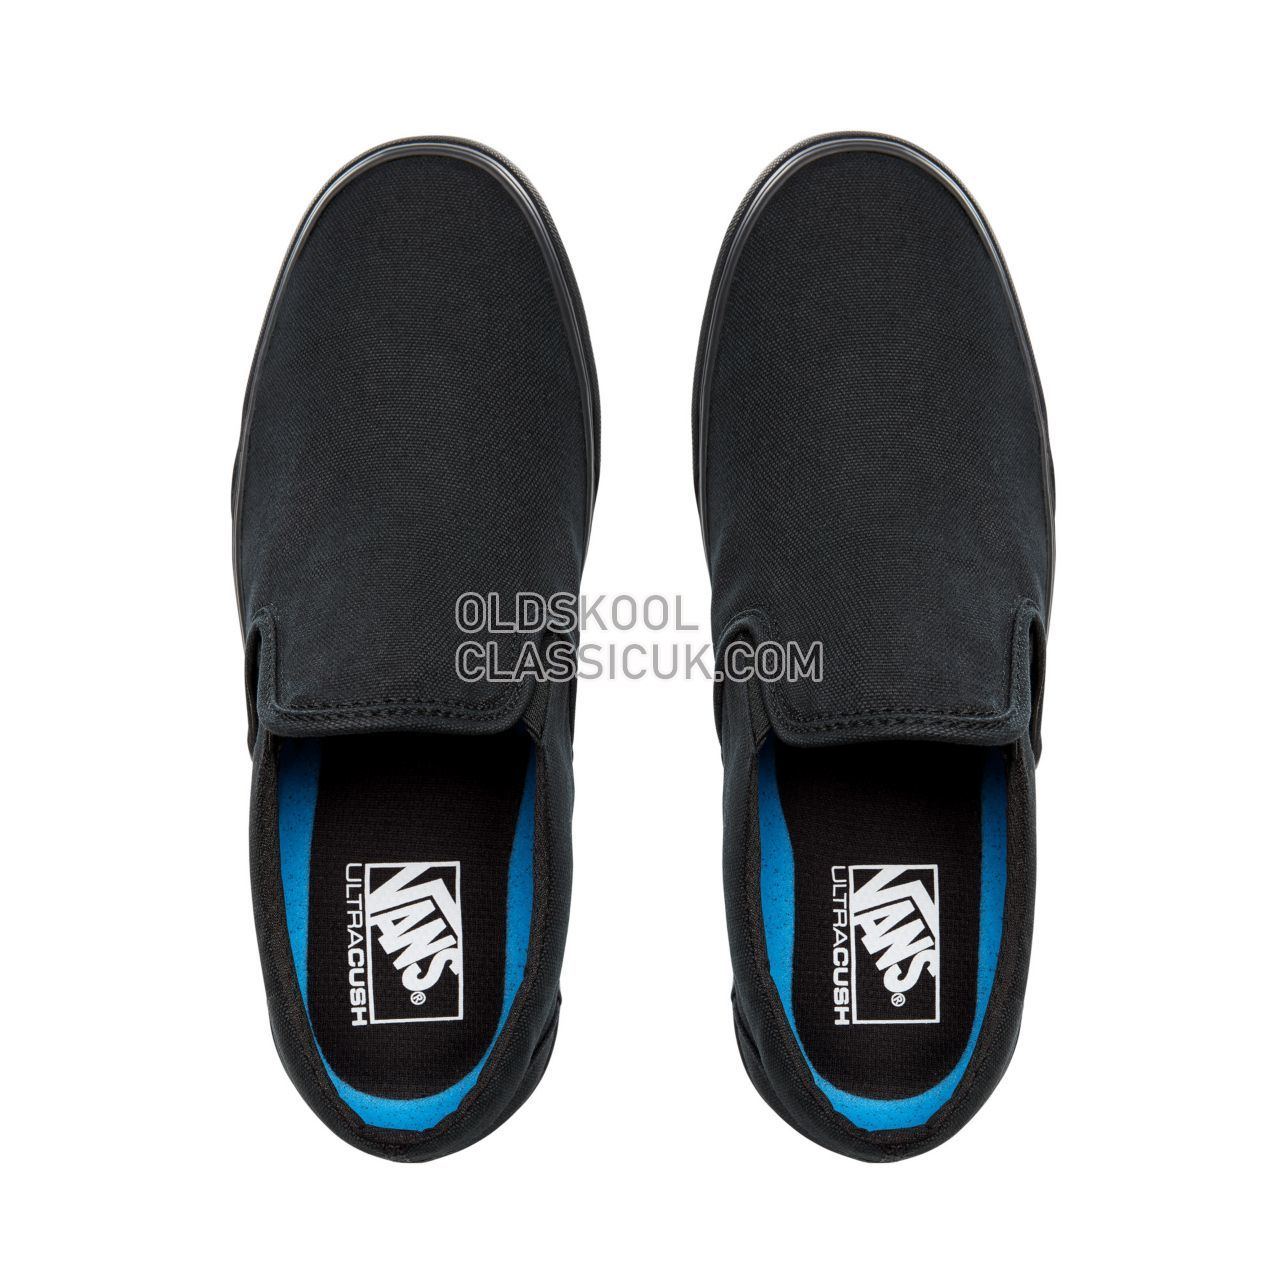 Vans Made For The Makers Classic Slip-On  Sneakers Mens Black VA3MUDQBX Shoes